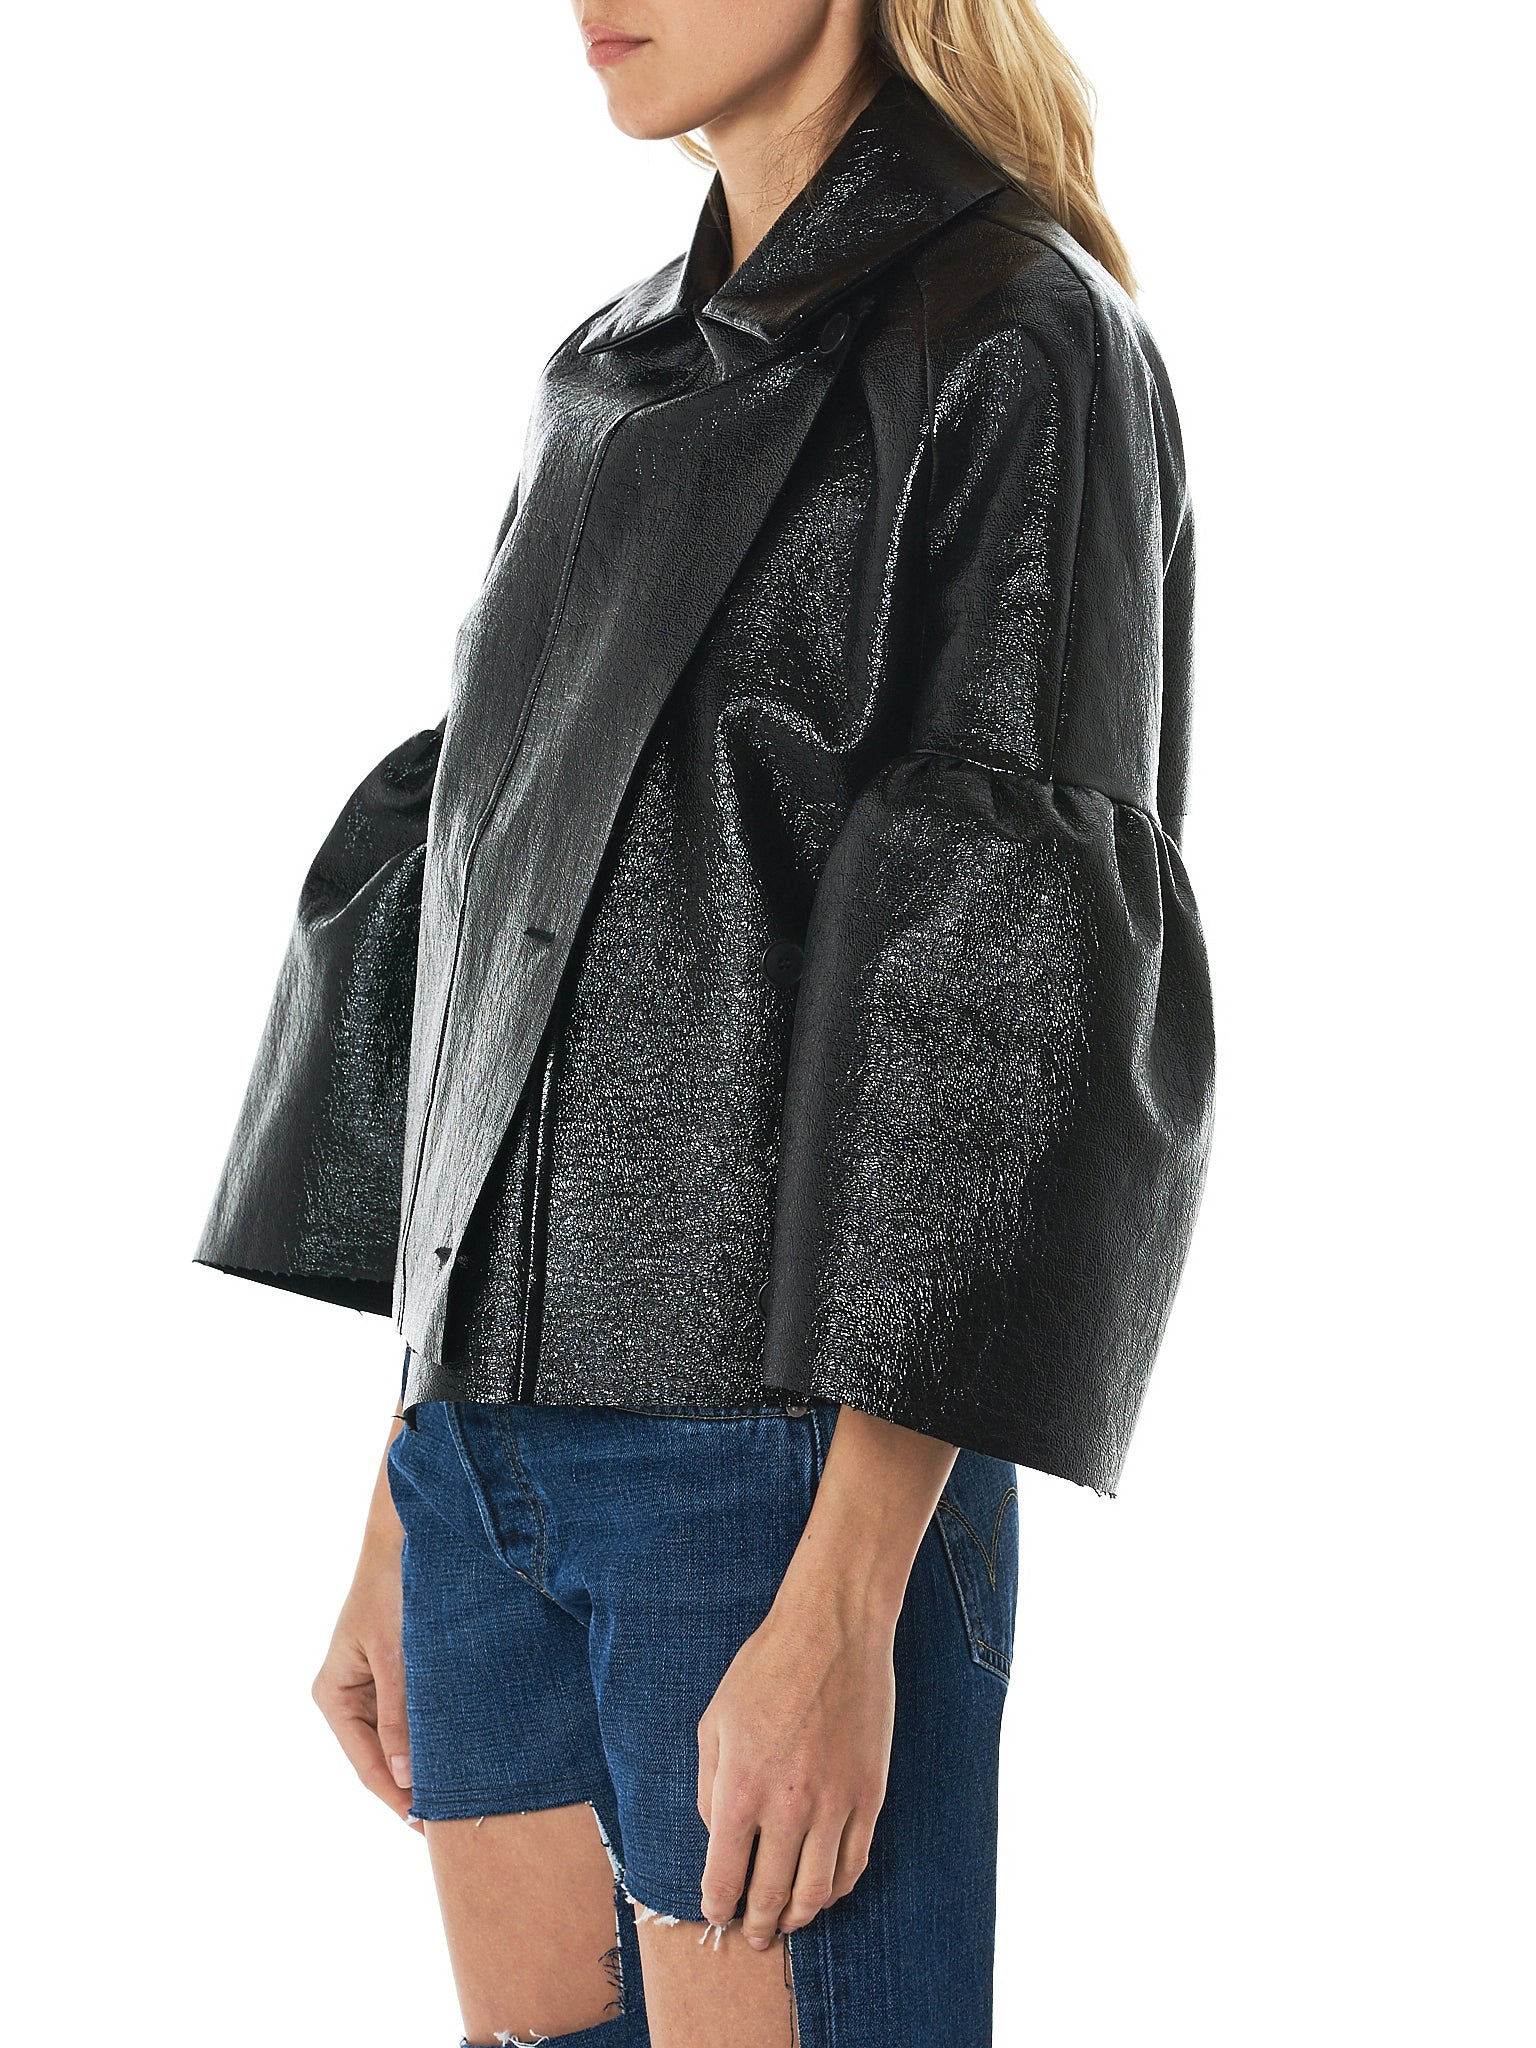 Lutz Huelle Jacket - Hlorenzo Side